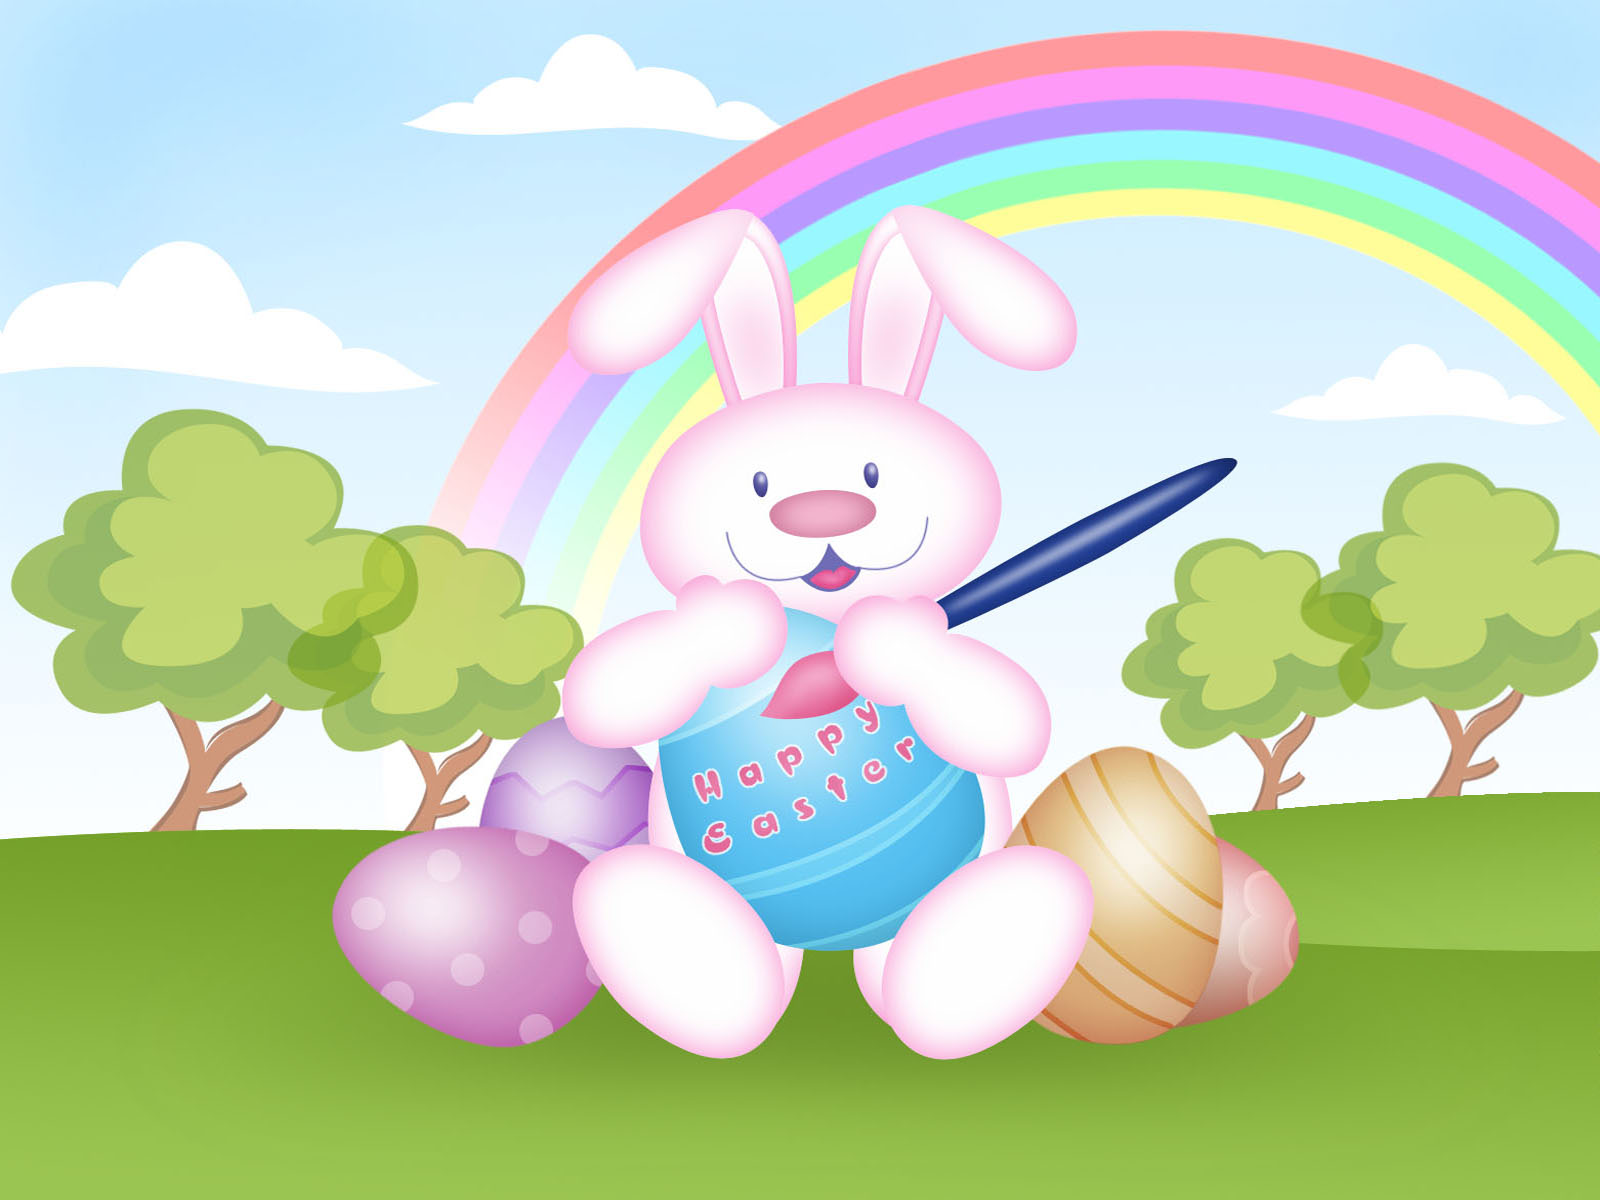 Happy Easter Bunny HD Wallpapers 9To5AnimationsCom 1600x1200